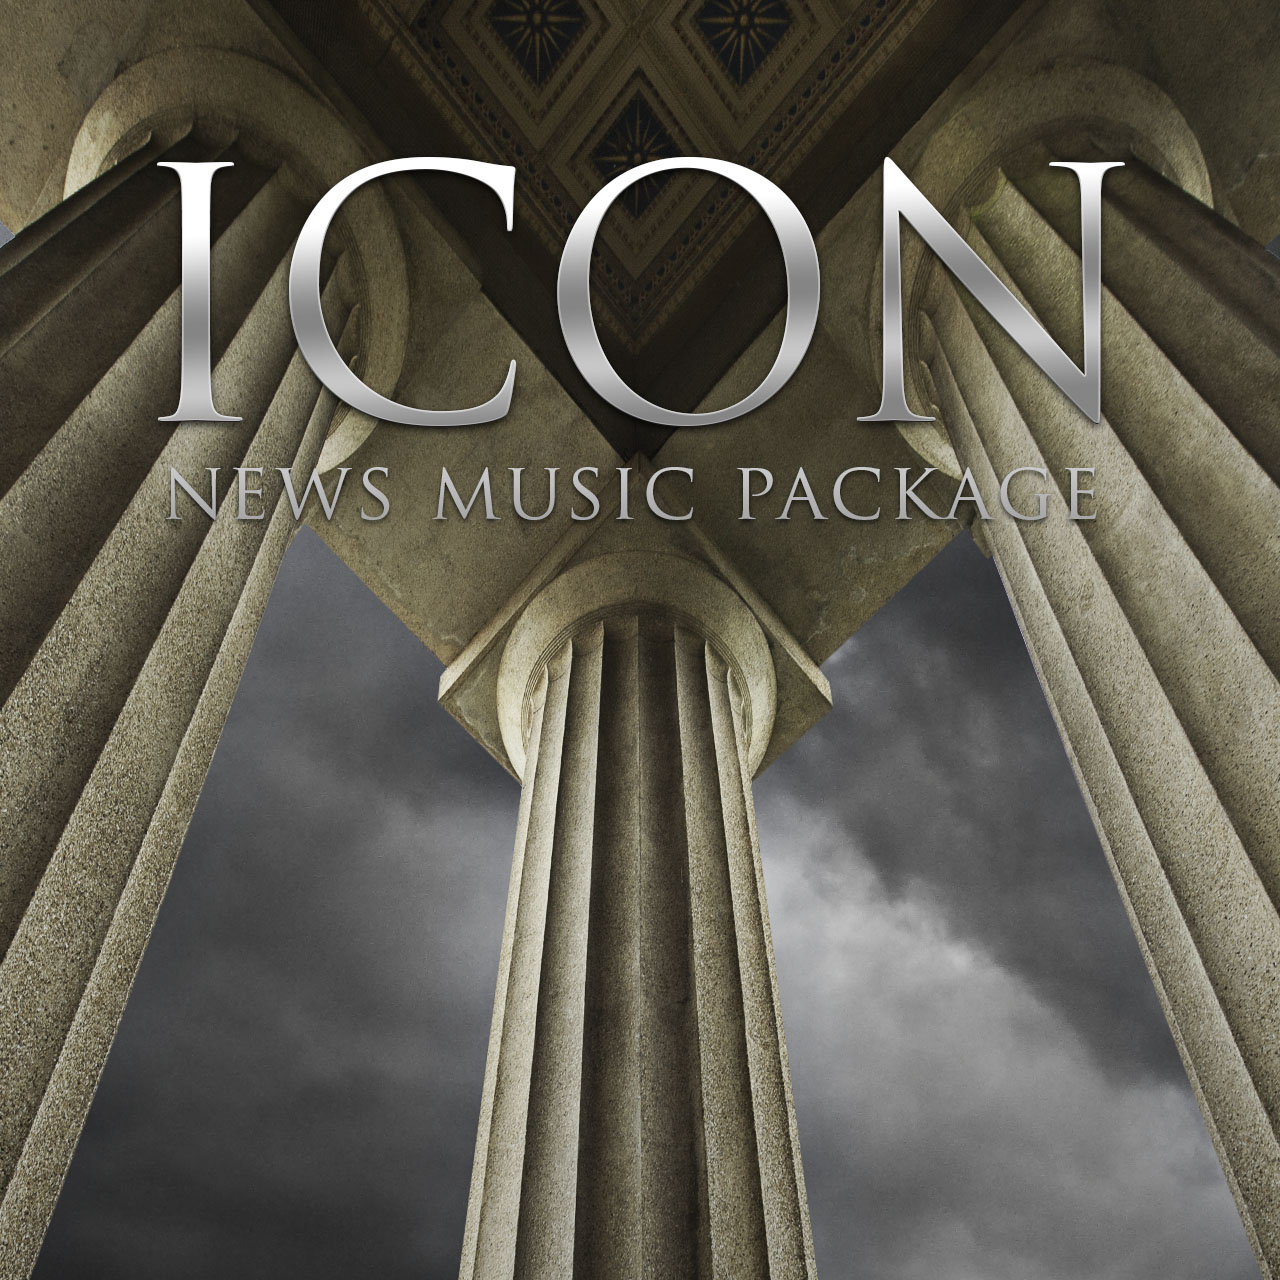 Icon News Music Package